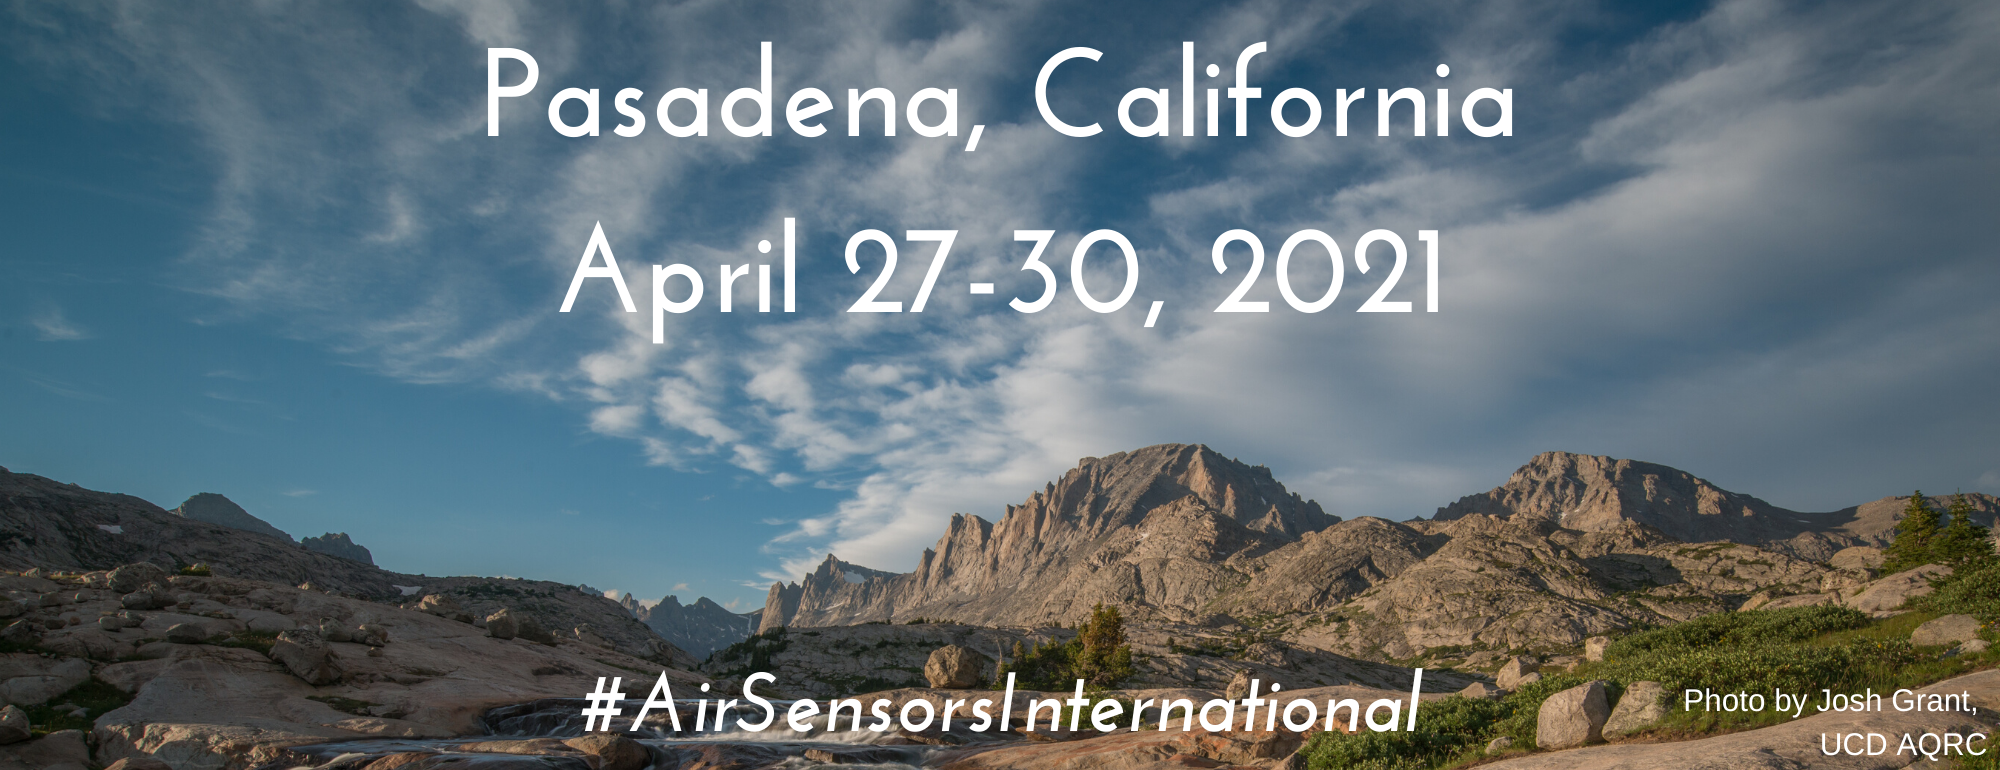 UC Davis Air Quality Research Center Air Sensors International Conference 2021